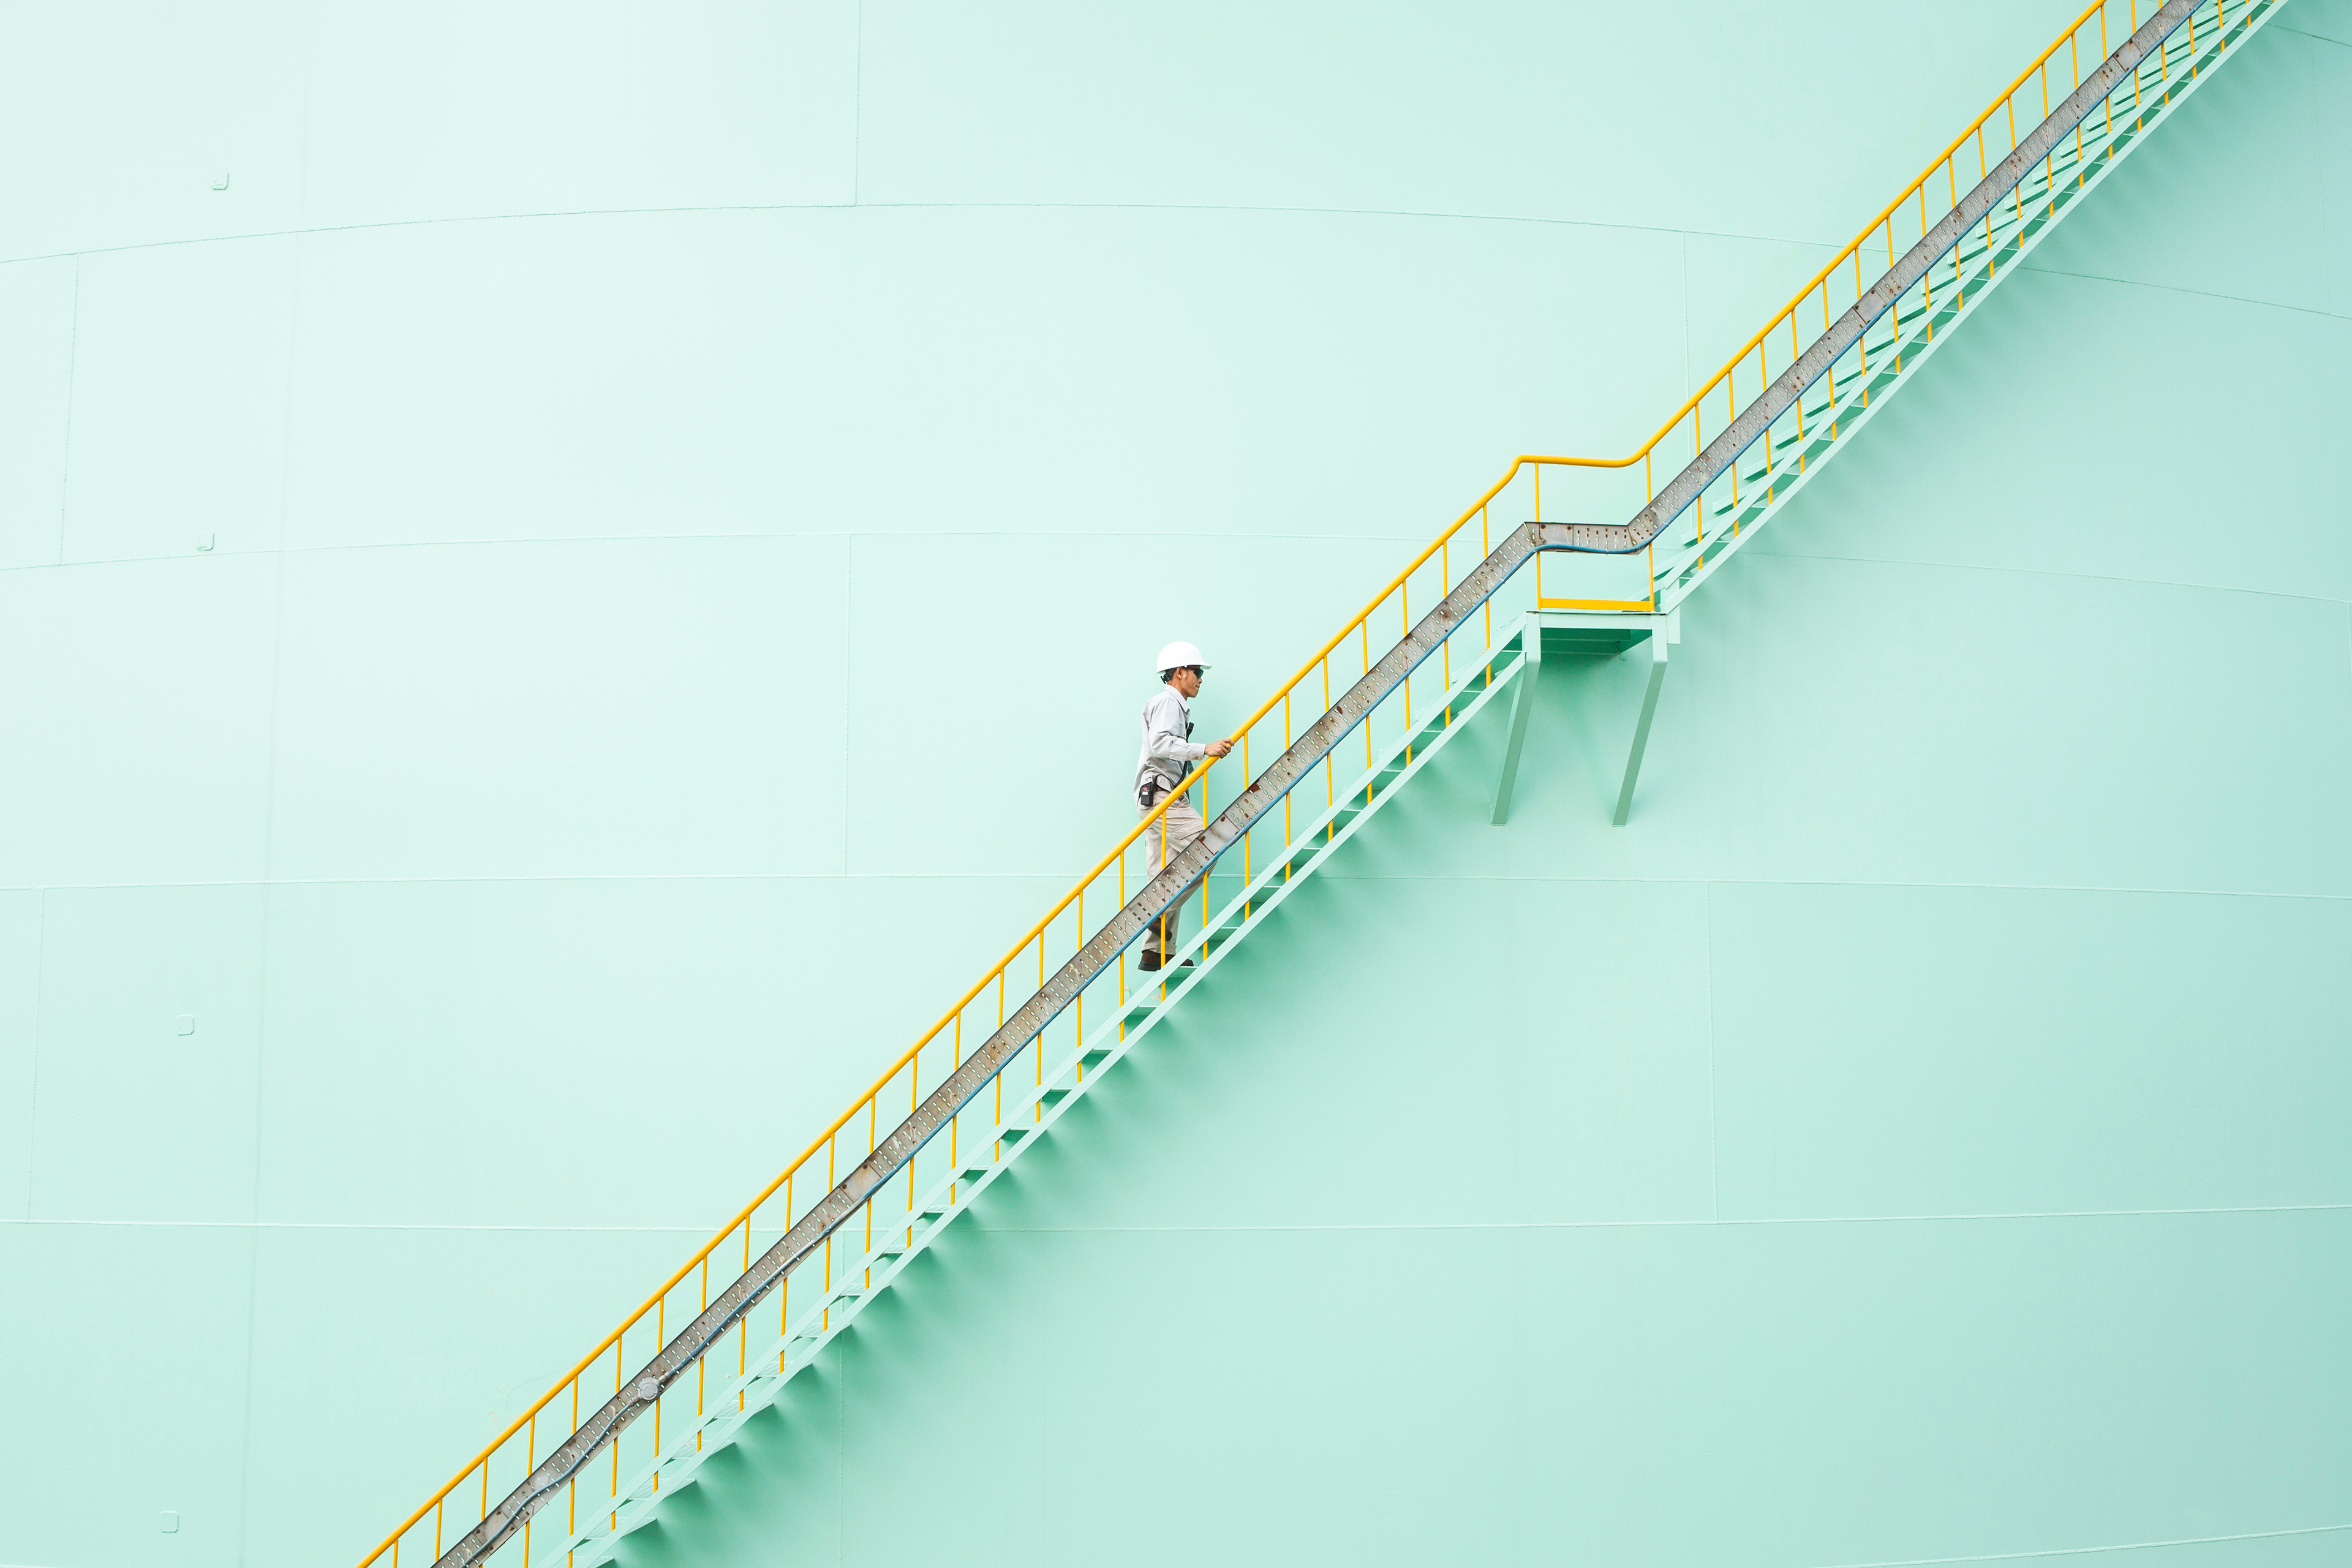 Man ascending steep stairs